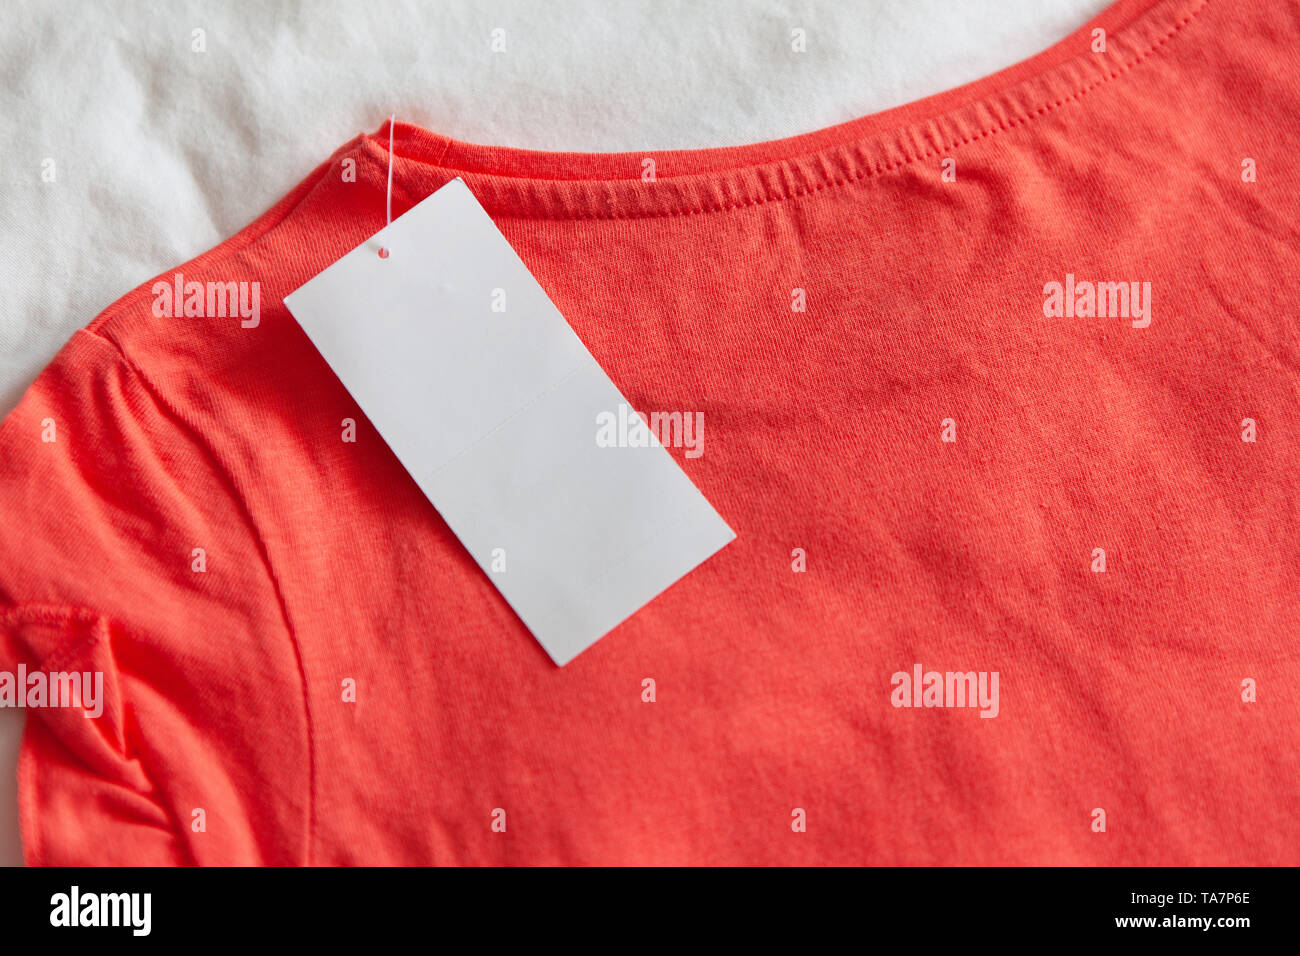 New pink red kid's or women's t-shirt with label on white background. Concept shopping, summer sales, discounts - Stock Image